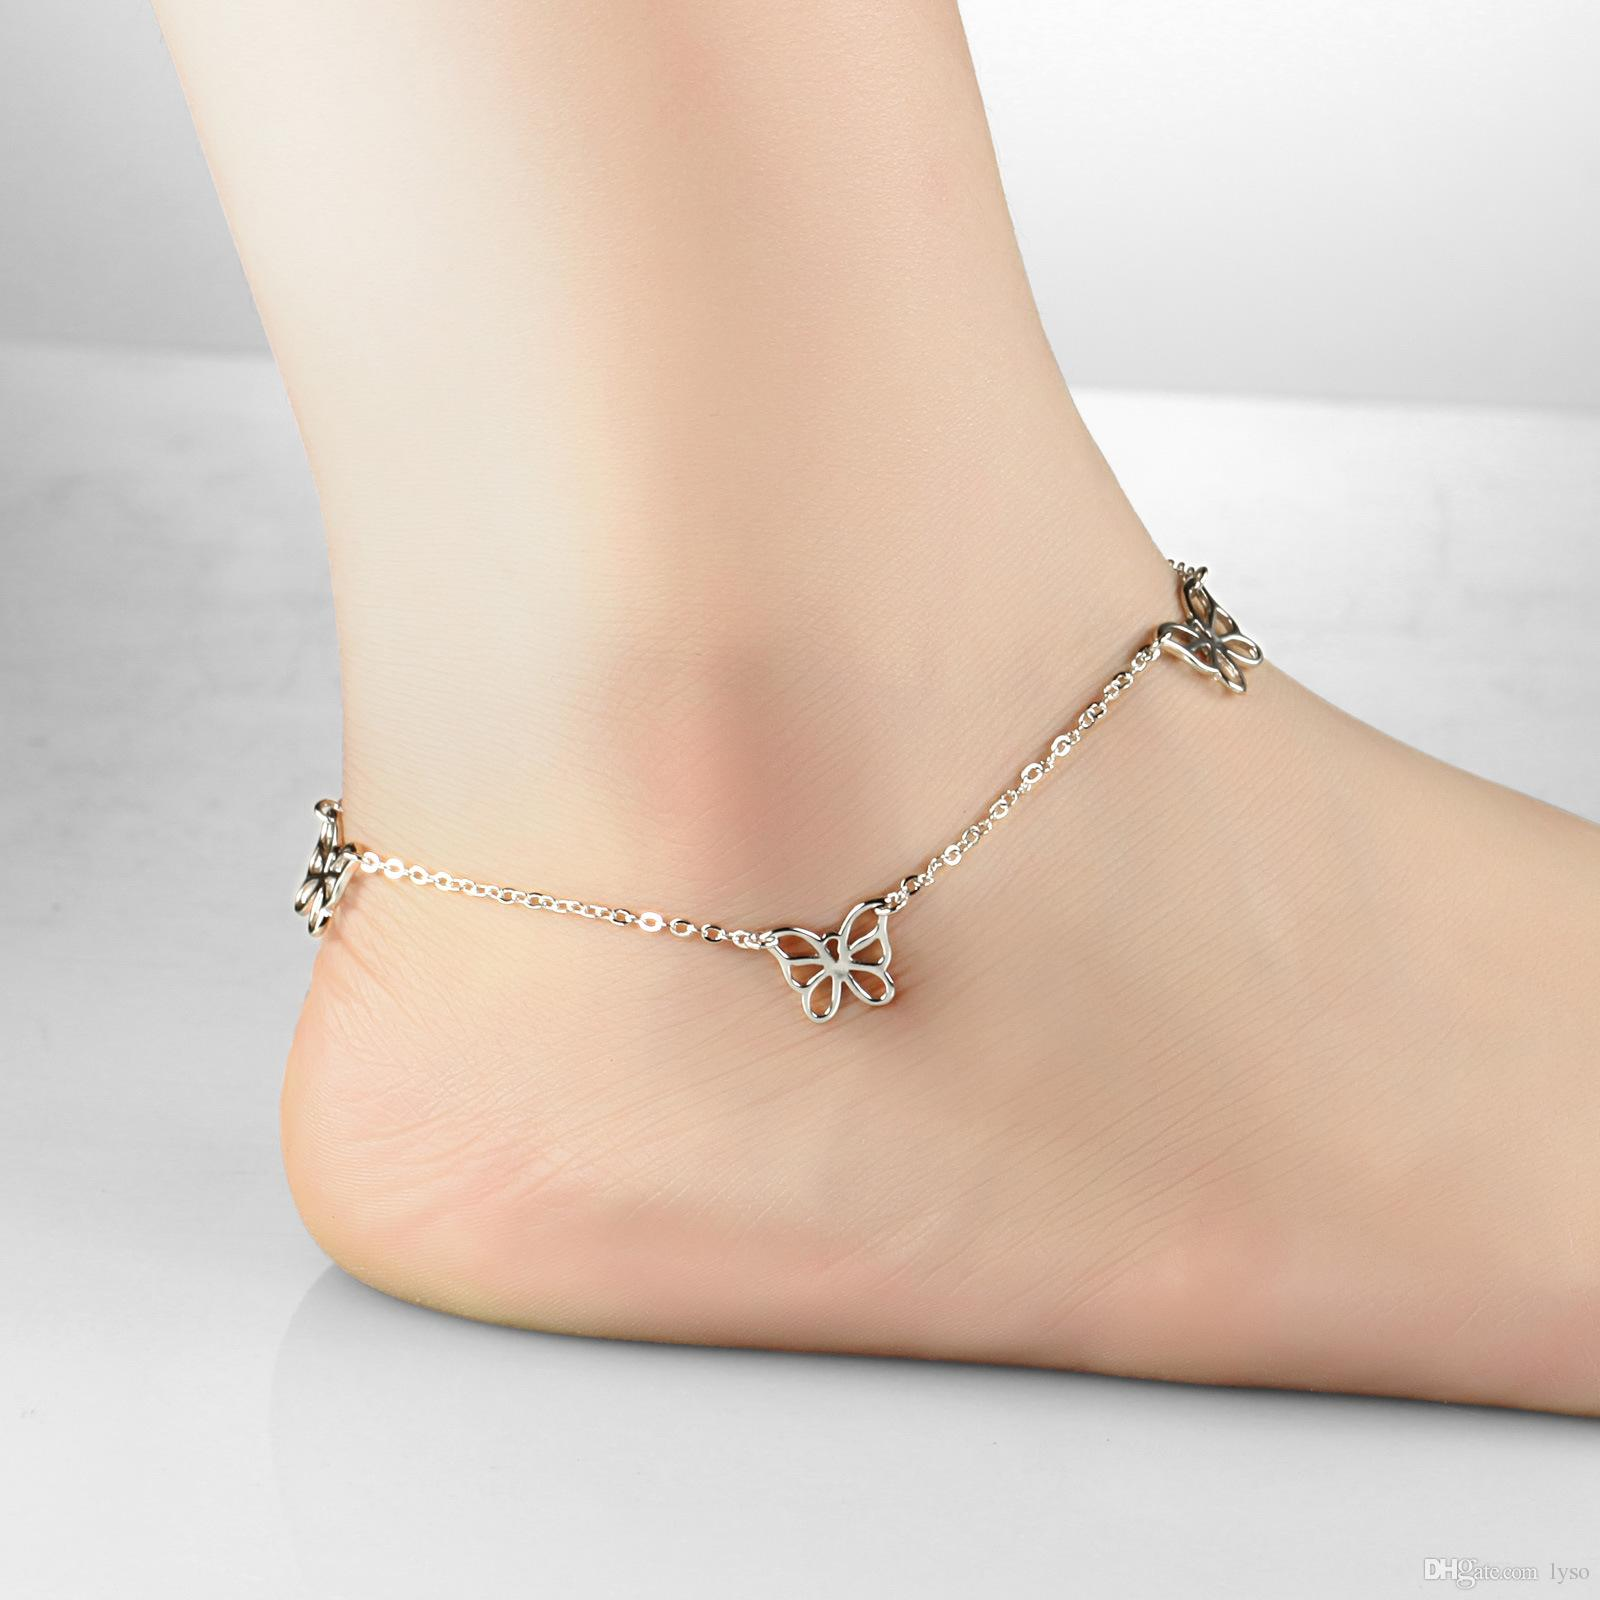 jewelry jerezwine teen silver gift wedding beach anklet anklets